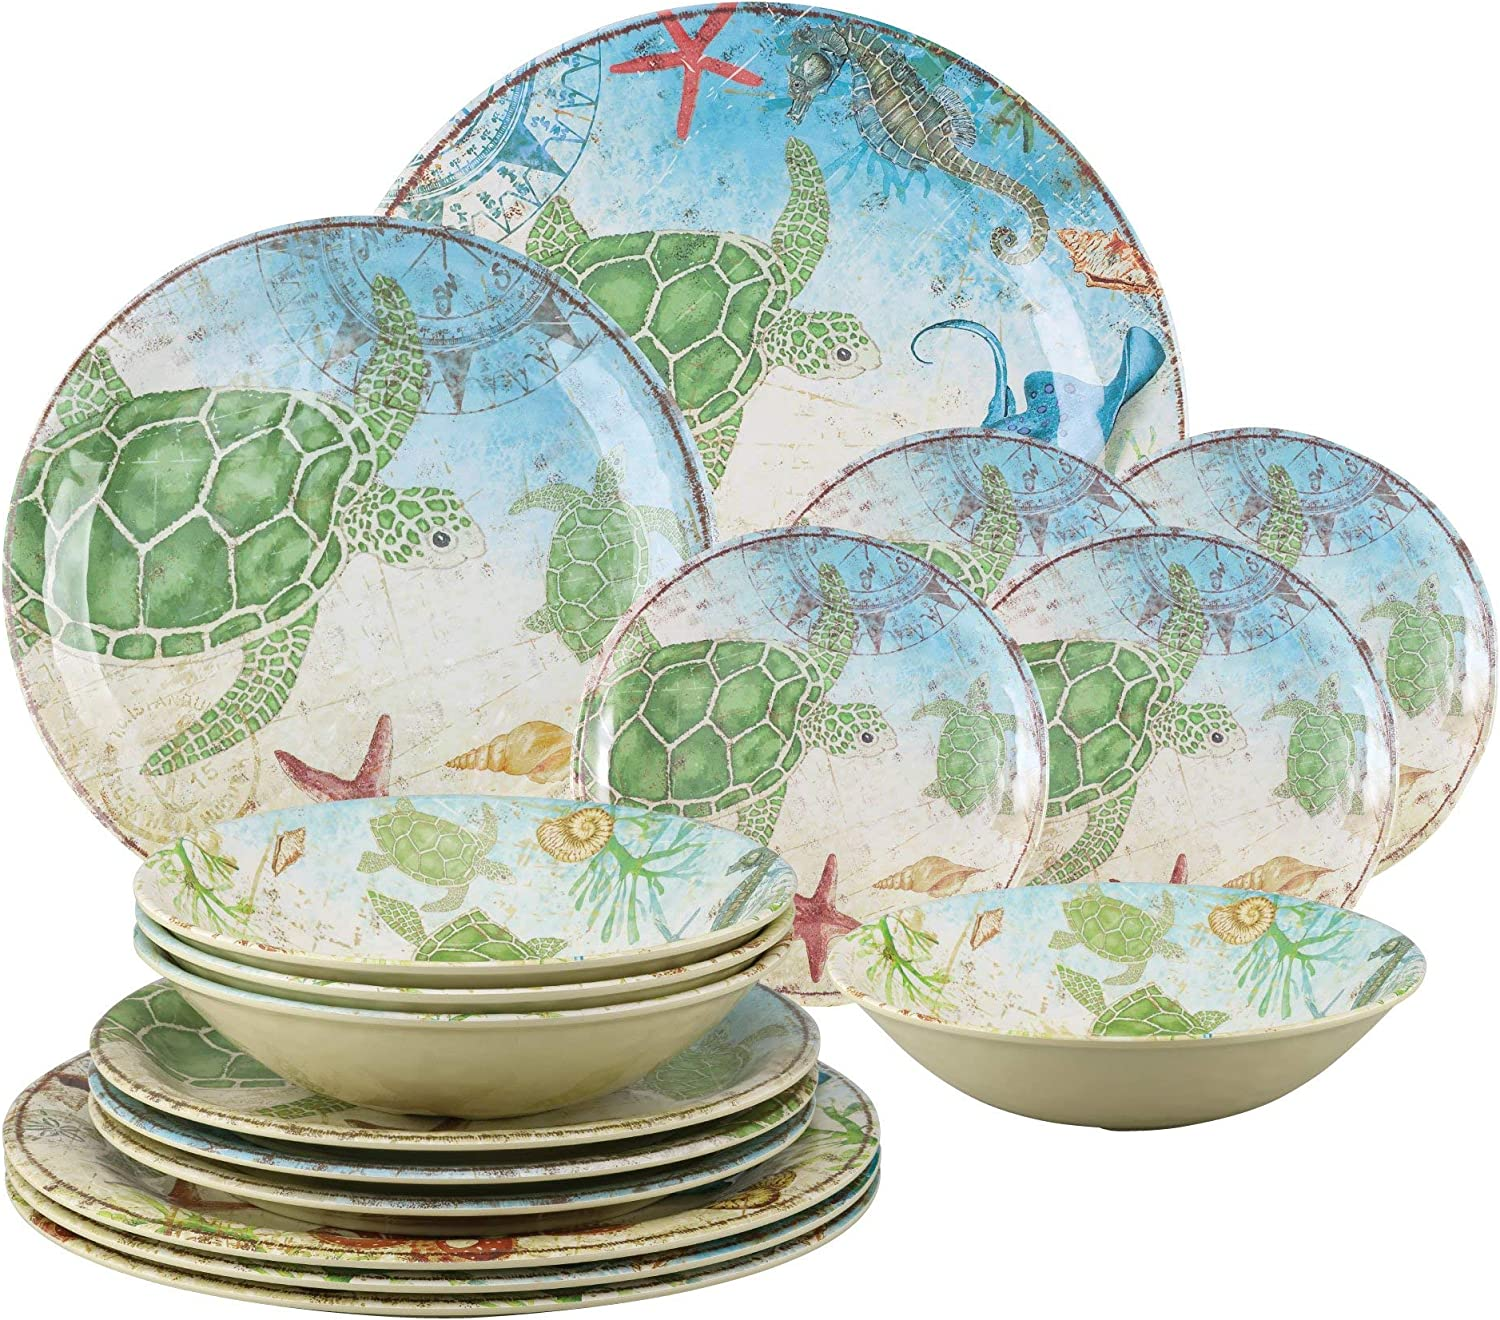 Gourmet Art 16-Piece Sealife Turtle Heavyweight and Durable Melamine Dinnerware Set, Service for 4. Includes Dinner Plates, Salad Plates, Dessert Plates and Bowls. for Indoors Outdoors Everyday Use